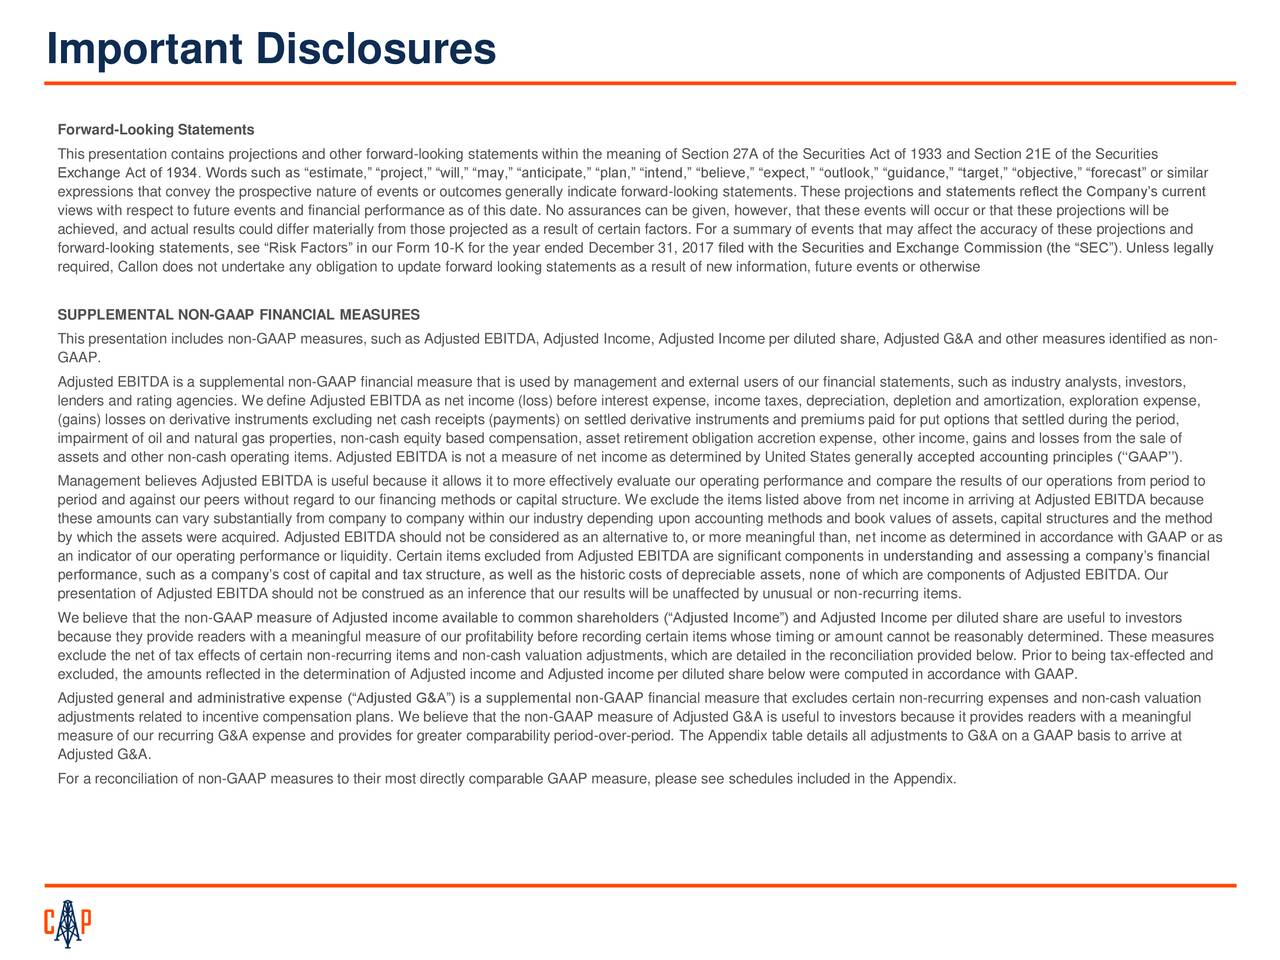 """Forward-Looking Statements This presentation contains projections and other forward-looking statements within the meaning of Section 27A of the Securities Act of 1933 and Section 21E of the Securities Exchange Act of 1934. Words such as """"estimate,"""" """"project,"""" """"will,"""" """"may,"""" """"anticipate,"""" """"plan,"""" """"intend,"""" """"believe,"""" """"expect,"""" """"outlook,"""" """"guidance,"""" """"target,"""" """"objective,"""" """"forecast"""" or similar expressions that convey the prospective nature of events or outcomes generally indicate forward-looking statements. These projections and statements reflect the Company's current views with respect to future events and financial performance as of this date. No assurances can be given, however, that these events will occur or that these projections will be achieved, and actual results could differ materially from those projected as a result of certain factors. For a summary of events that may affect the accuracy of these projections and forward-looking statements, see """"Risk Factors"""" in our Form 10-K for the year ended December 31, 2017 filed with the Securities and Exchange Commission (the """"SEC""""). Unless legally required, Callon does not undertake any obligation to update forward looking statements as a result of new information, future events or otherwise SUPPLEMENTAL NON-GAAP FINANCIAL MEASURES This presentation includes non-GAAP measures, such as Adjusted EBITDA, Adjusted Income, Adjusted Income per diluted share, Adjusted G&A and other measures identified as non- GAAP. Adjusted EBITDA is a supplemental non-GAAP financial measure that is used by management and external users of our financial statements, such as industry analysts, investors, lenders and rating agencies. We define Adjusted EBITDA as net income (loss) before interest expense, income taxes, depreciation, depletion and amortization, exploration expense, (gains) losses on derivative instruments excluding net cash receipts (payments) on settled derivative instruments and premiums paid for put options that settled du"""